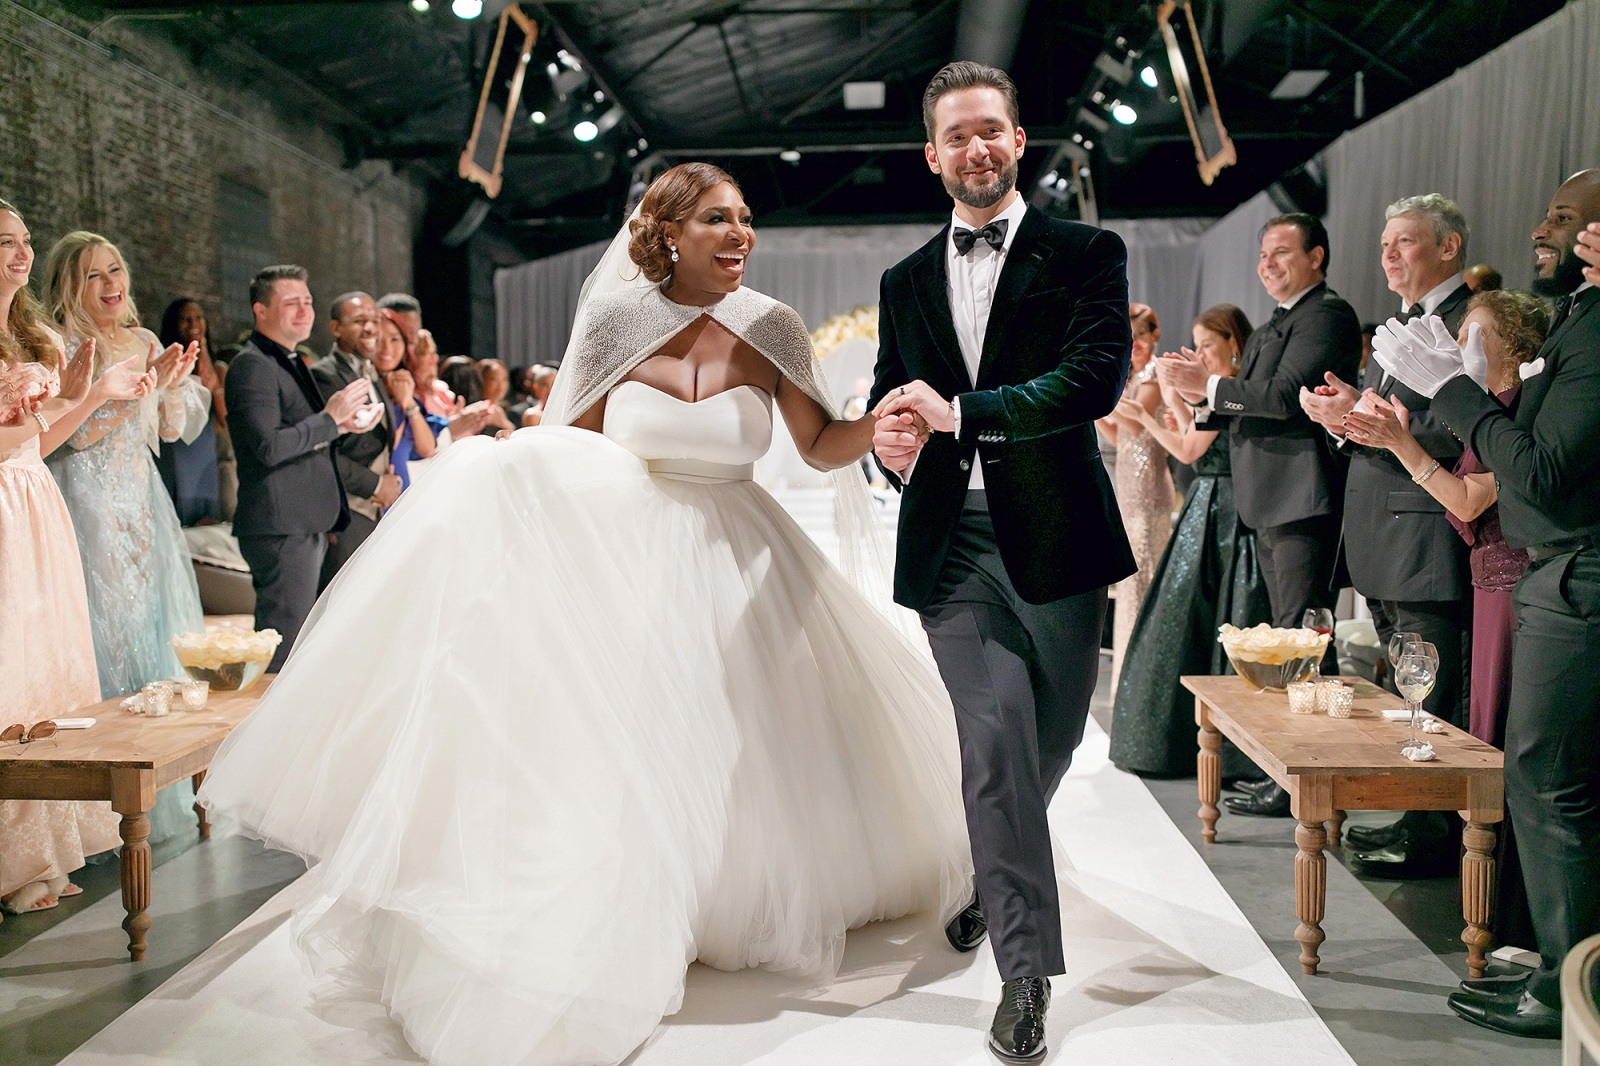 Guests welcoming Serena Williams and Alexis Ohanian in the marriage hall